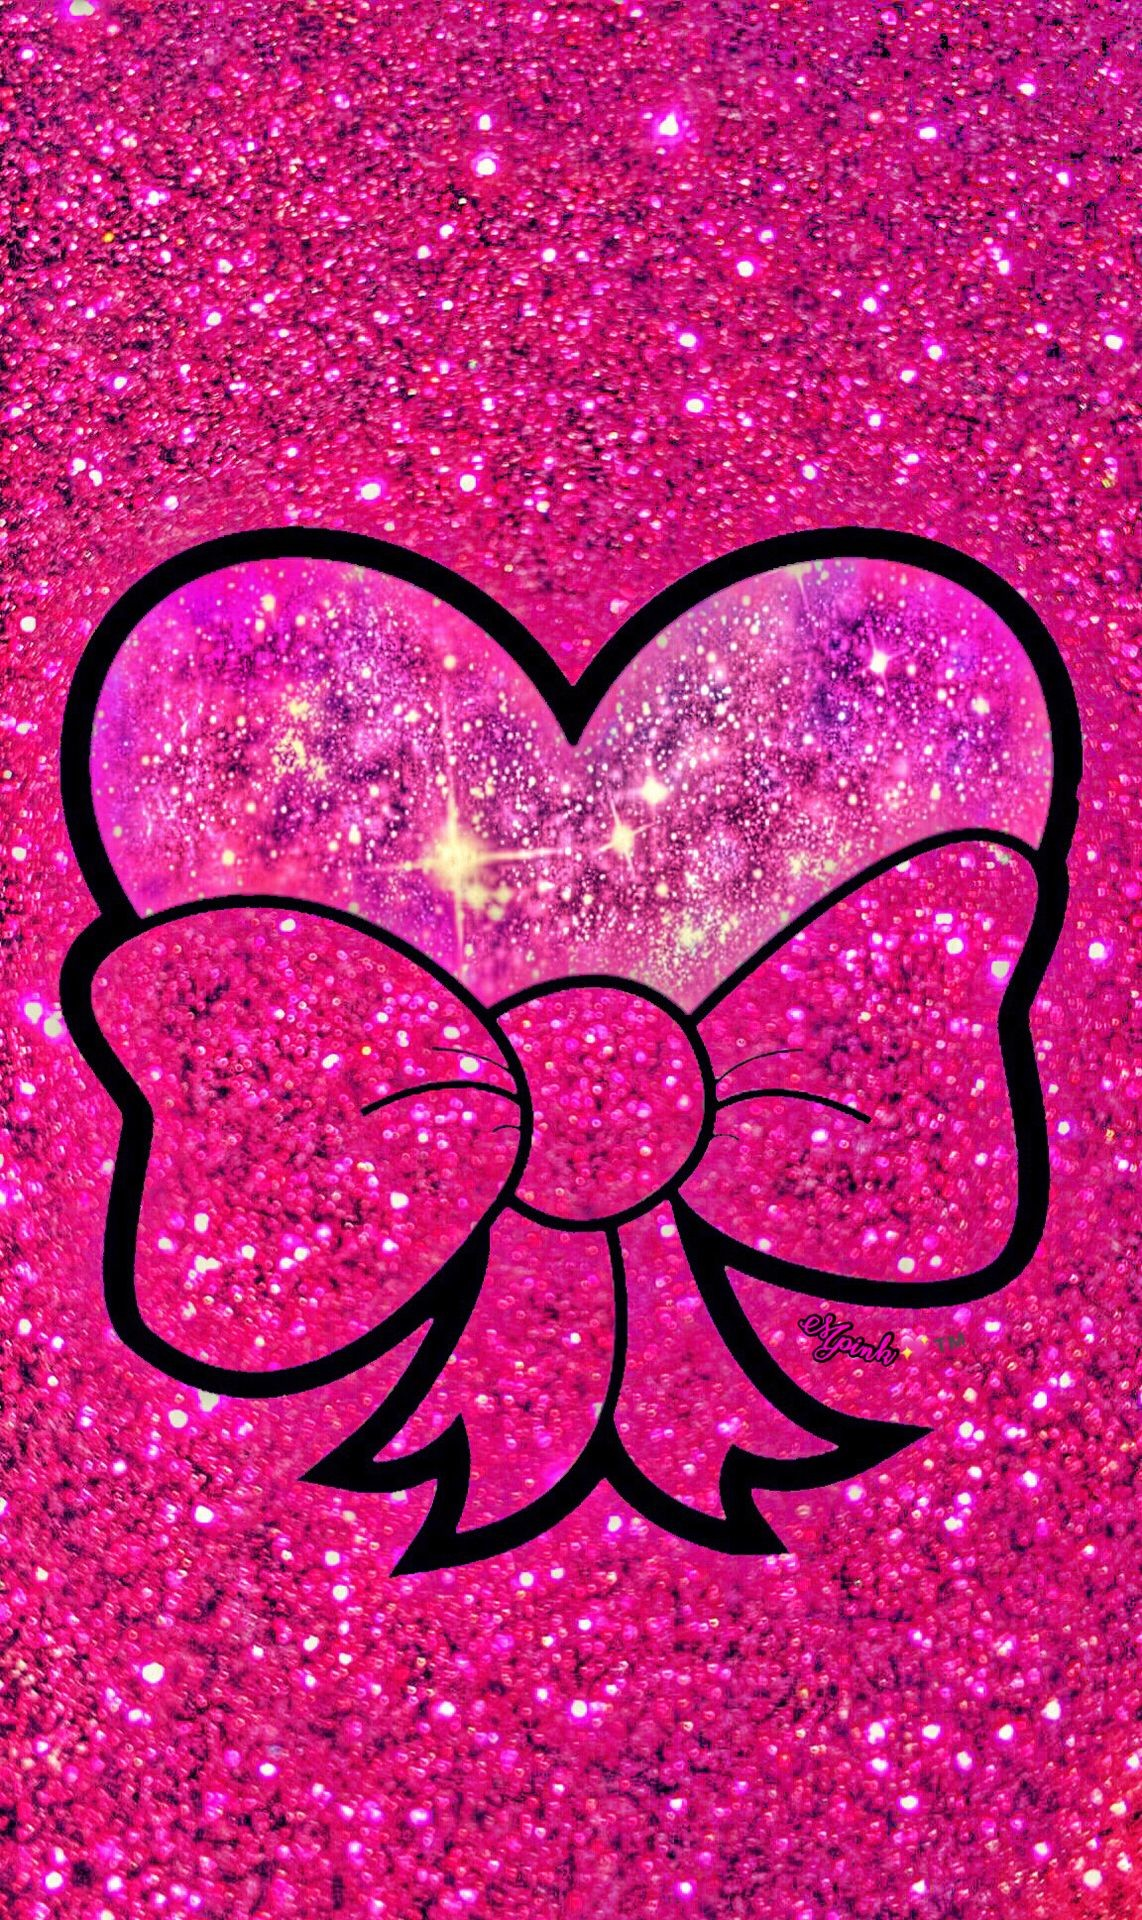 Res: 1142x1920, Pink Bling Heart Galaxy Wallpaper #androidwallpaper #iphonewallpaper # wallpaper #galaxy #sparkle #